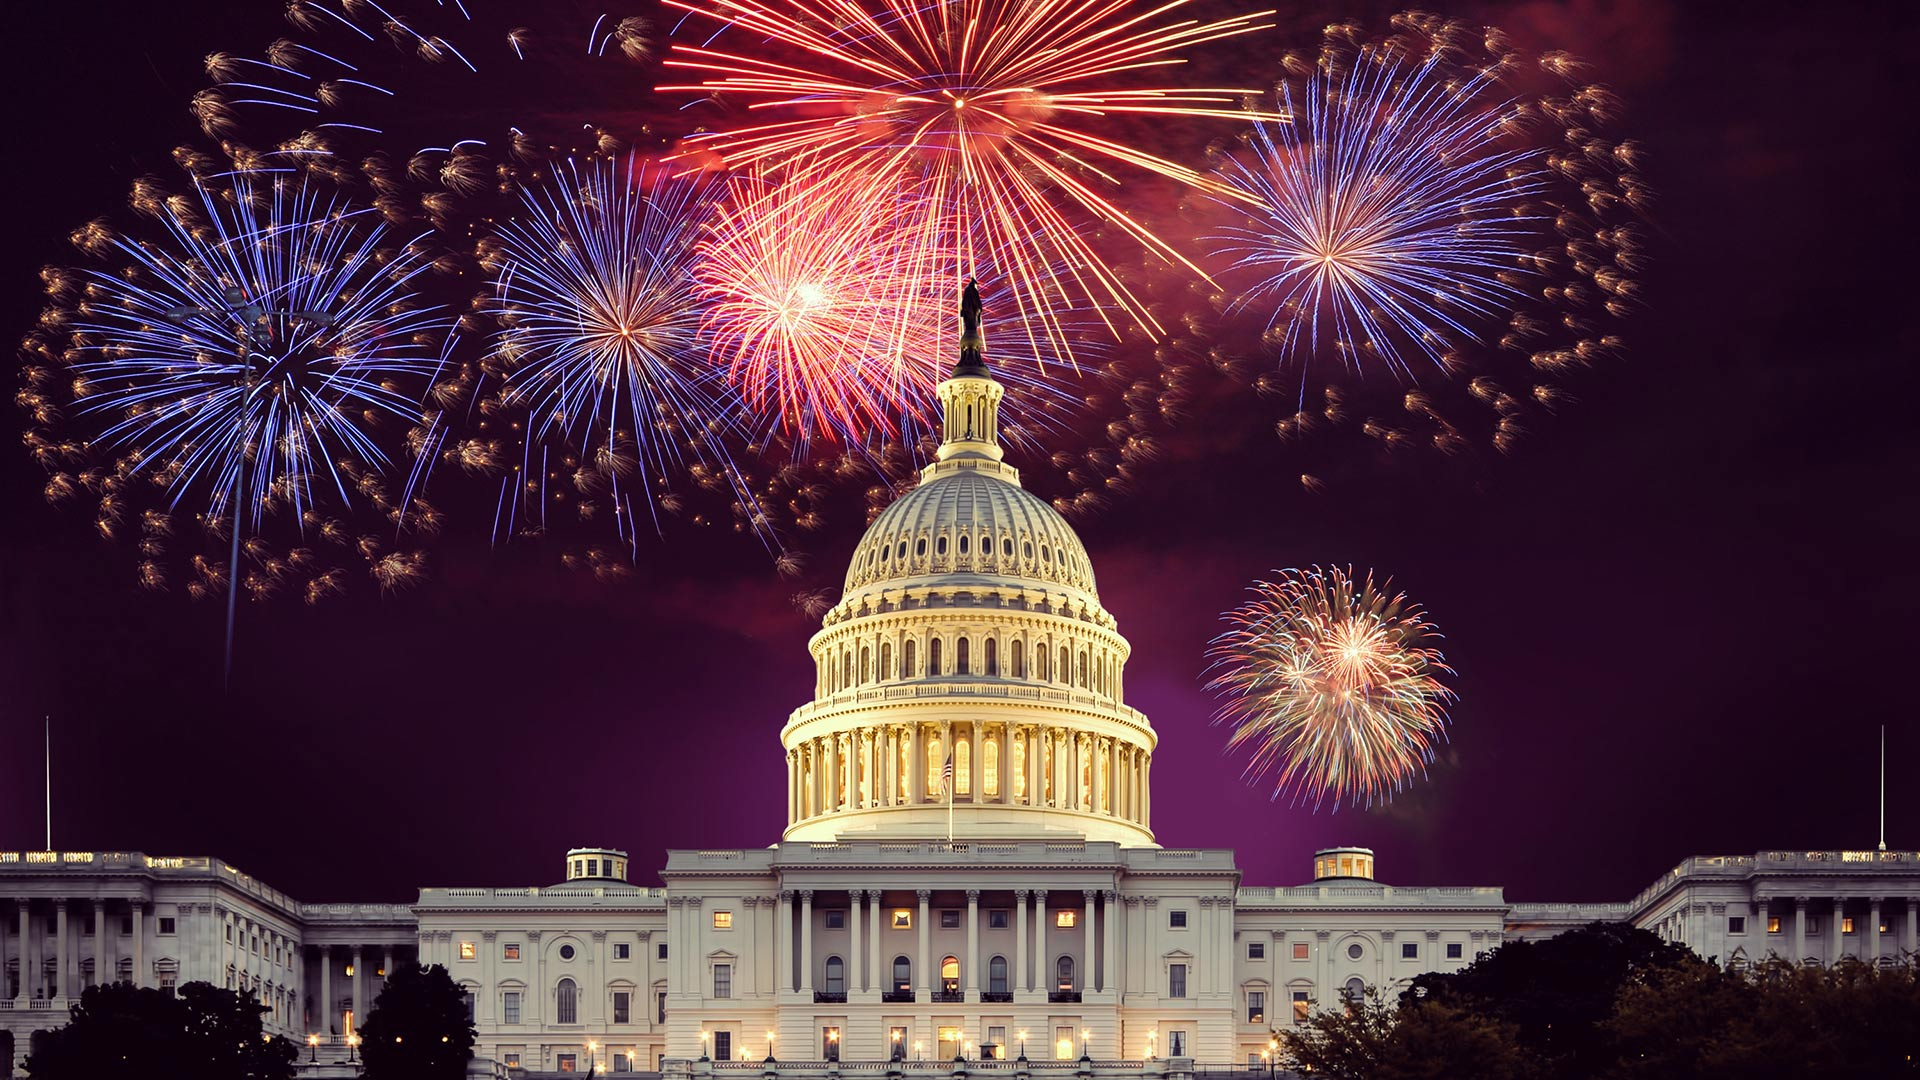 A CAPITOL FOURTH puts viewers front and center for the greatest display of fireworks anywhere in the nation.